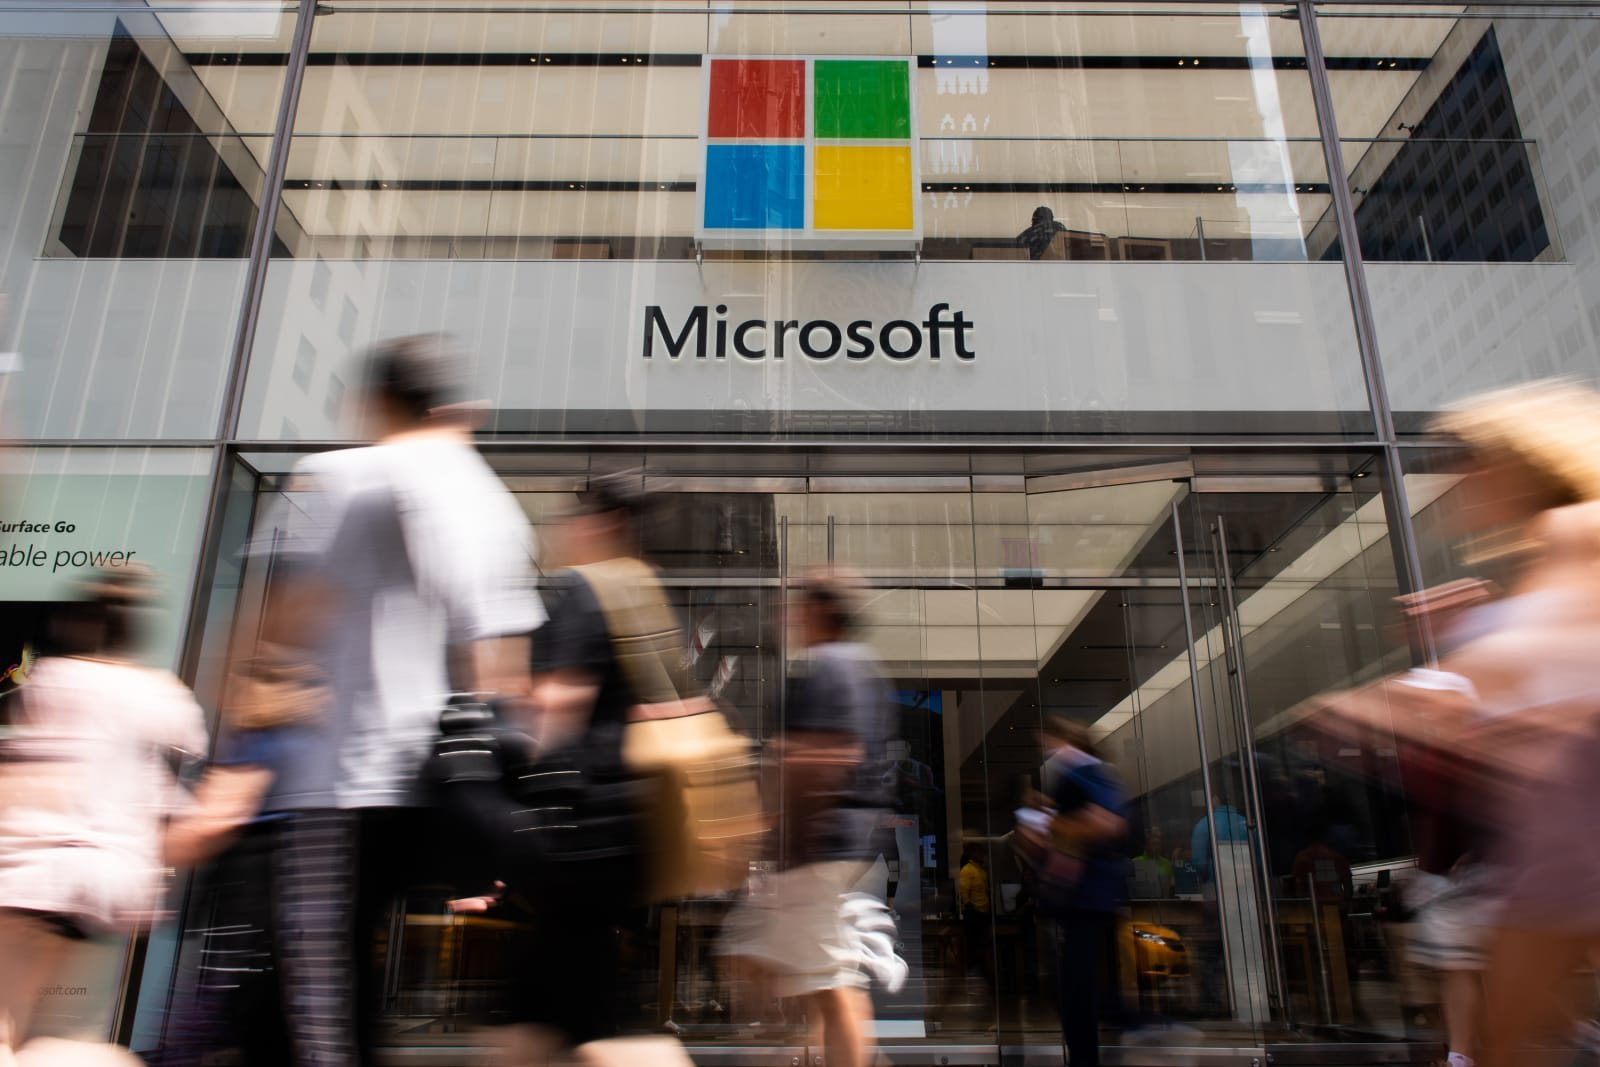 Microsoft briefly surpassed Apple as world's most valuable